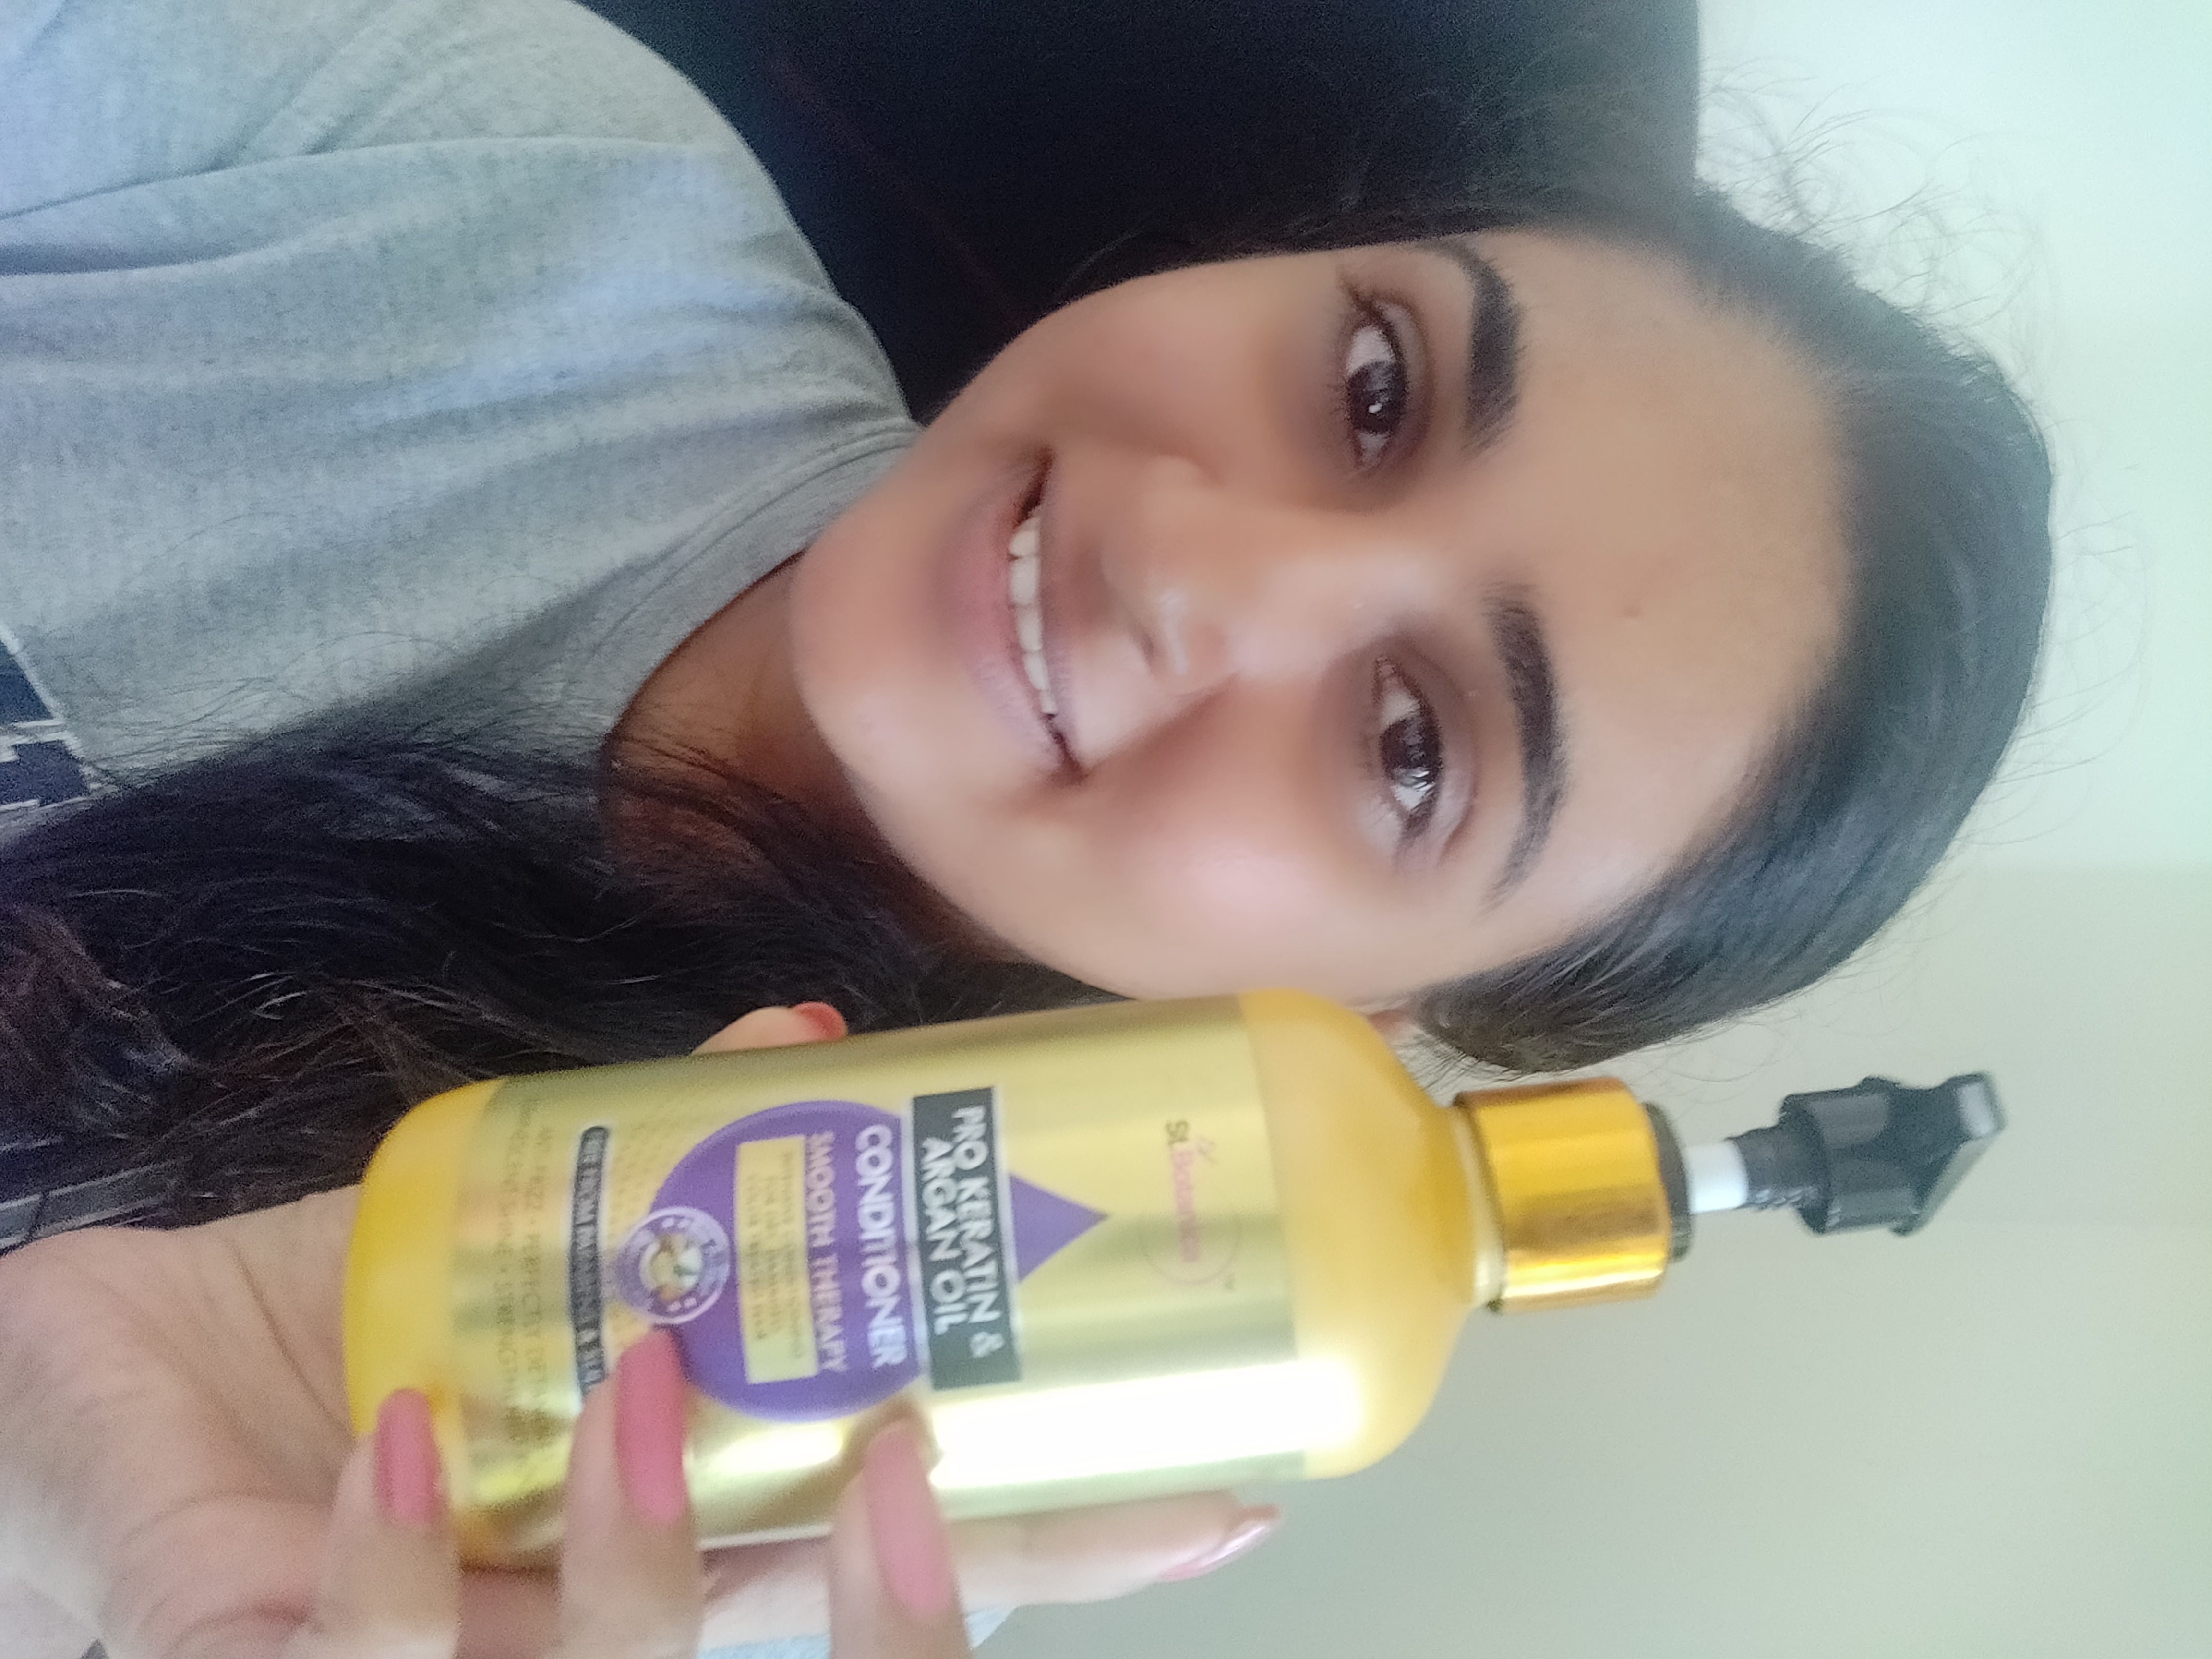 StBotanica Pro Keratin & Argan Oil Conditioner-Detangles and Softens My Hair-By saloni18-2